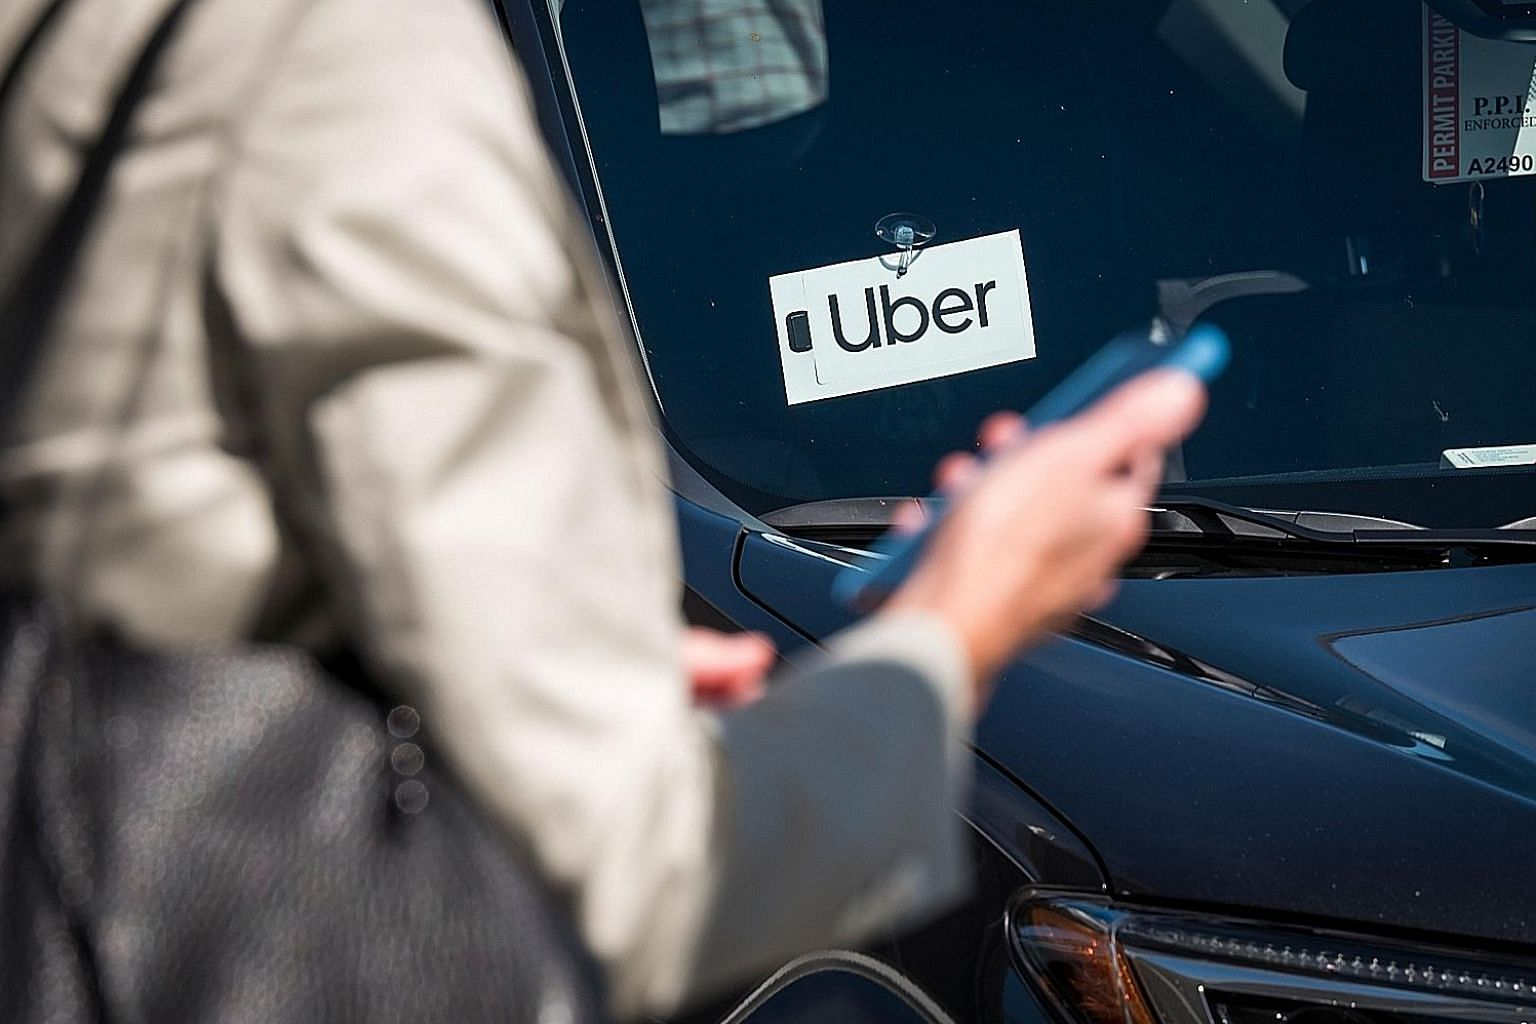 When the gig economy began, people most feared one-to-one job loss: An Uber driver comes in, a taxi driver goes out. Yet many app workers are only part-time. It's a business model that reduces everything to app-enabled transactions, and calls it work